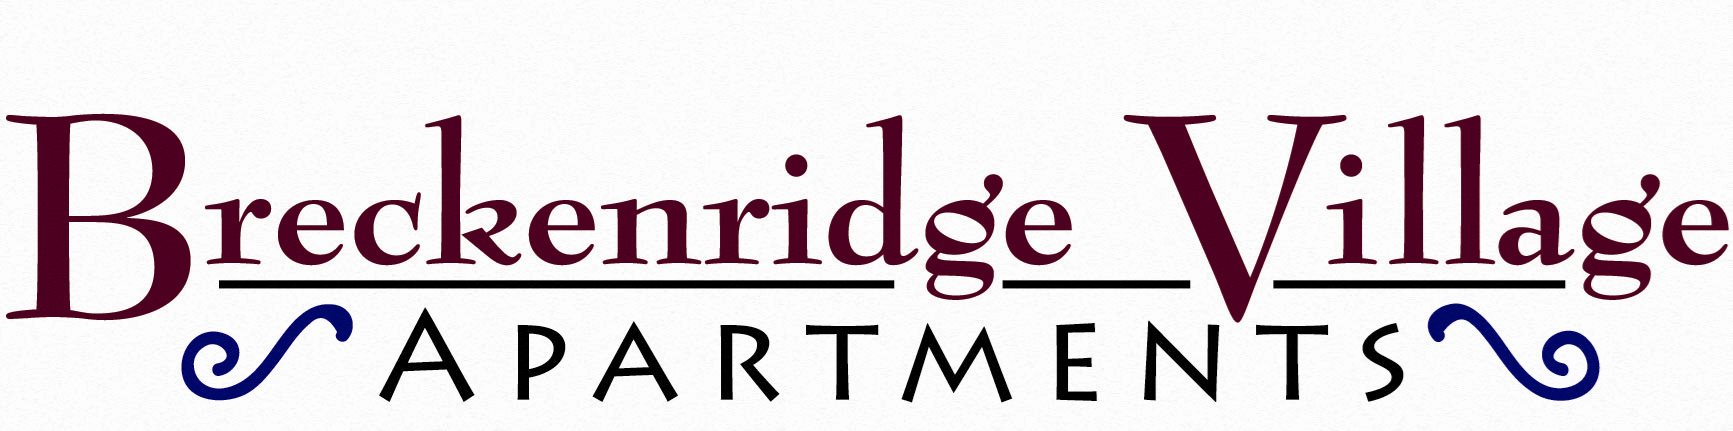 Breckenridg Village Apartments Logo | Breckenridge Village Apartments | Property Management, Inc.